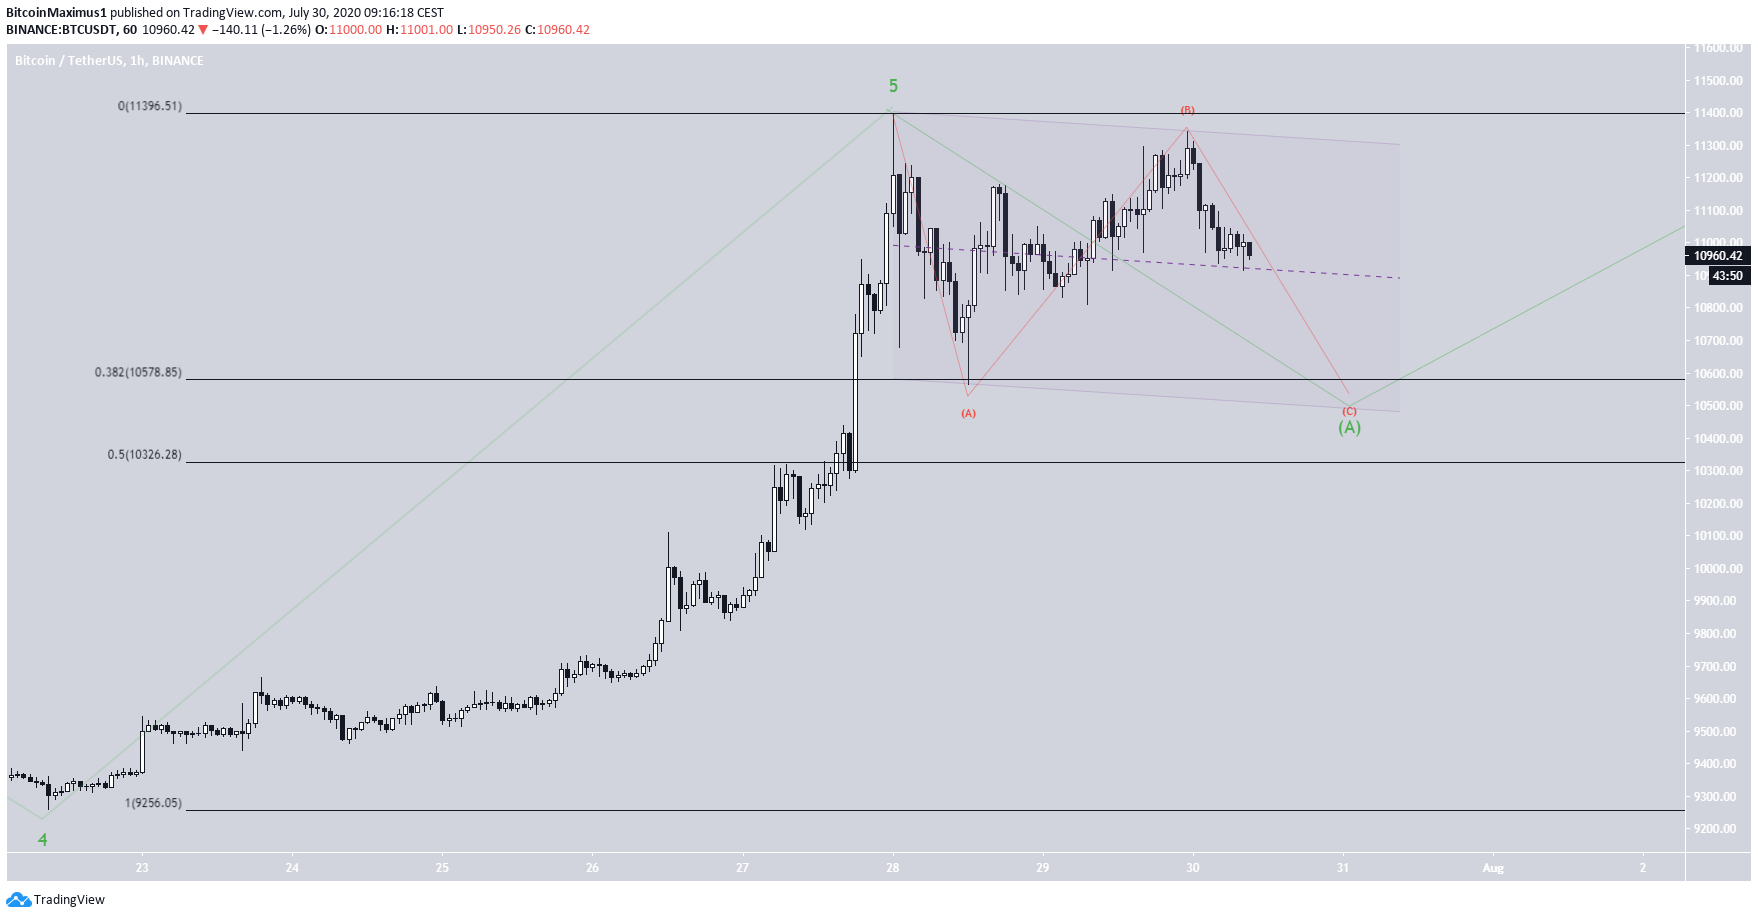 BTC Flat Correction